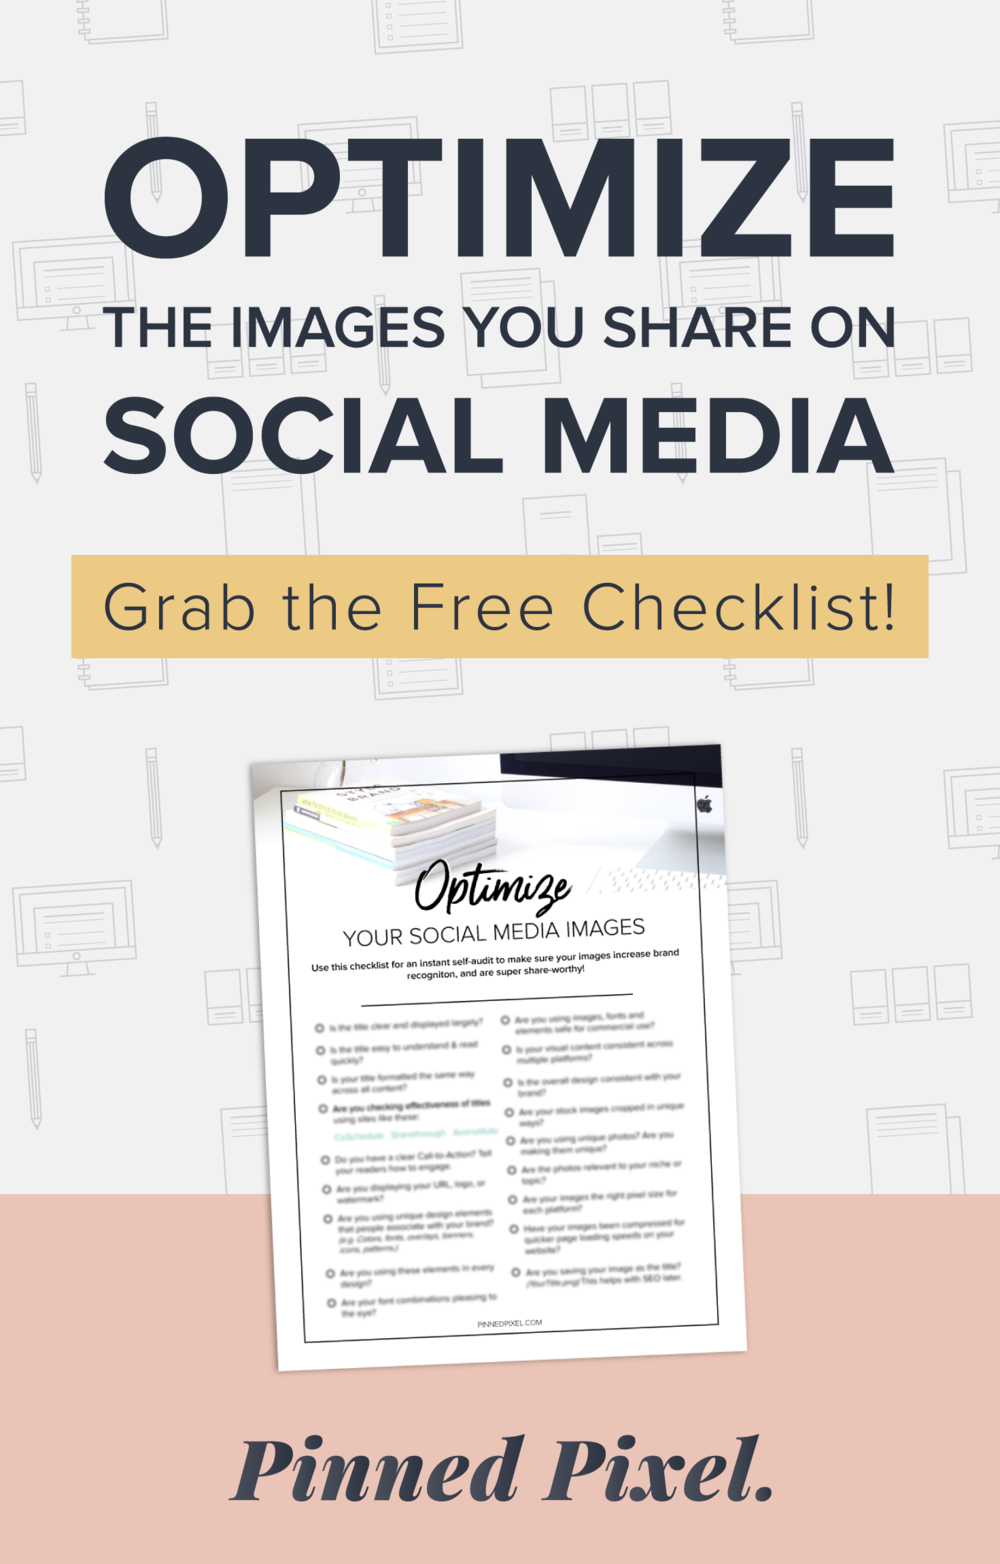 Ready To Optimize Social Media Images? Grab this FREE checklist for an instant self-audit! Get the most out of the content you share on social media.